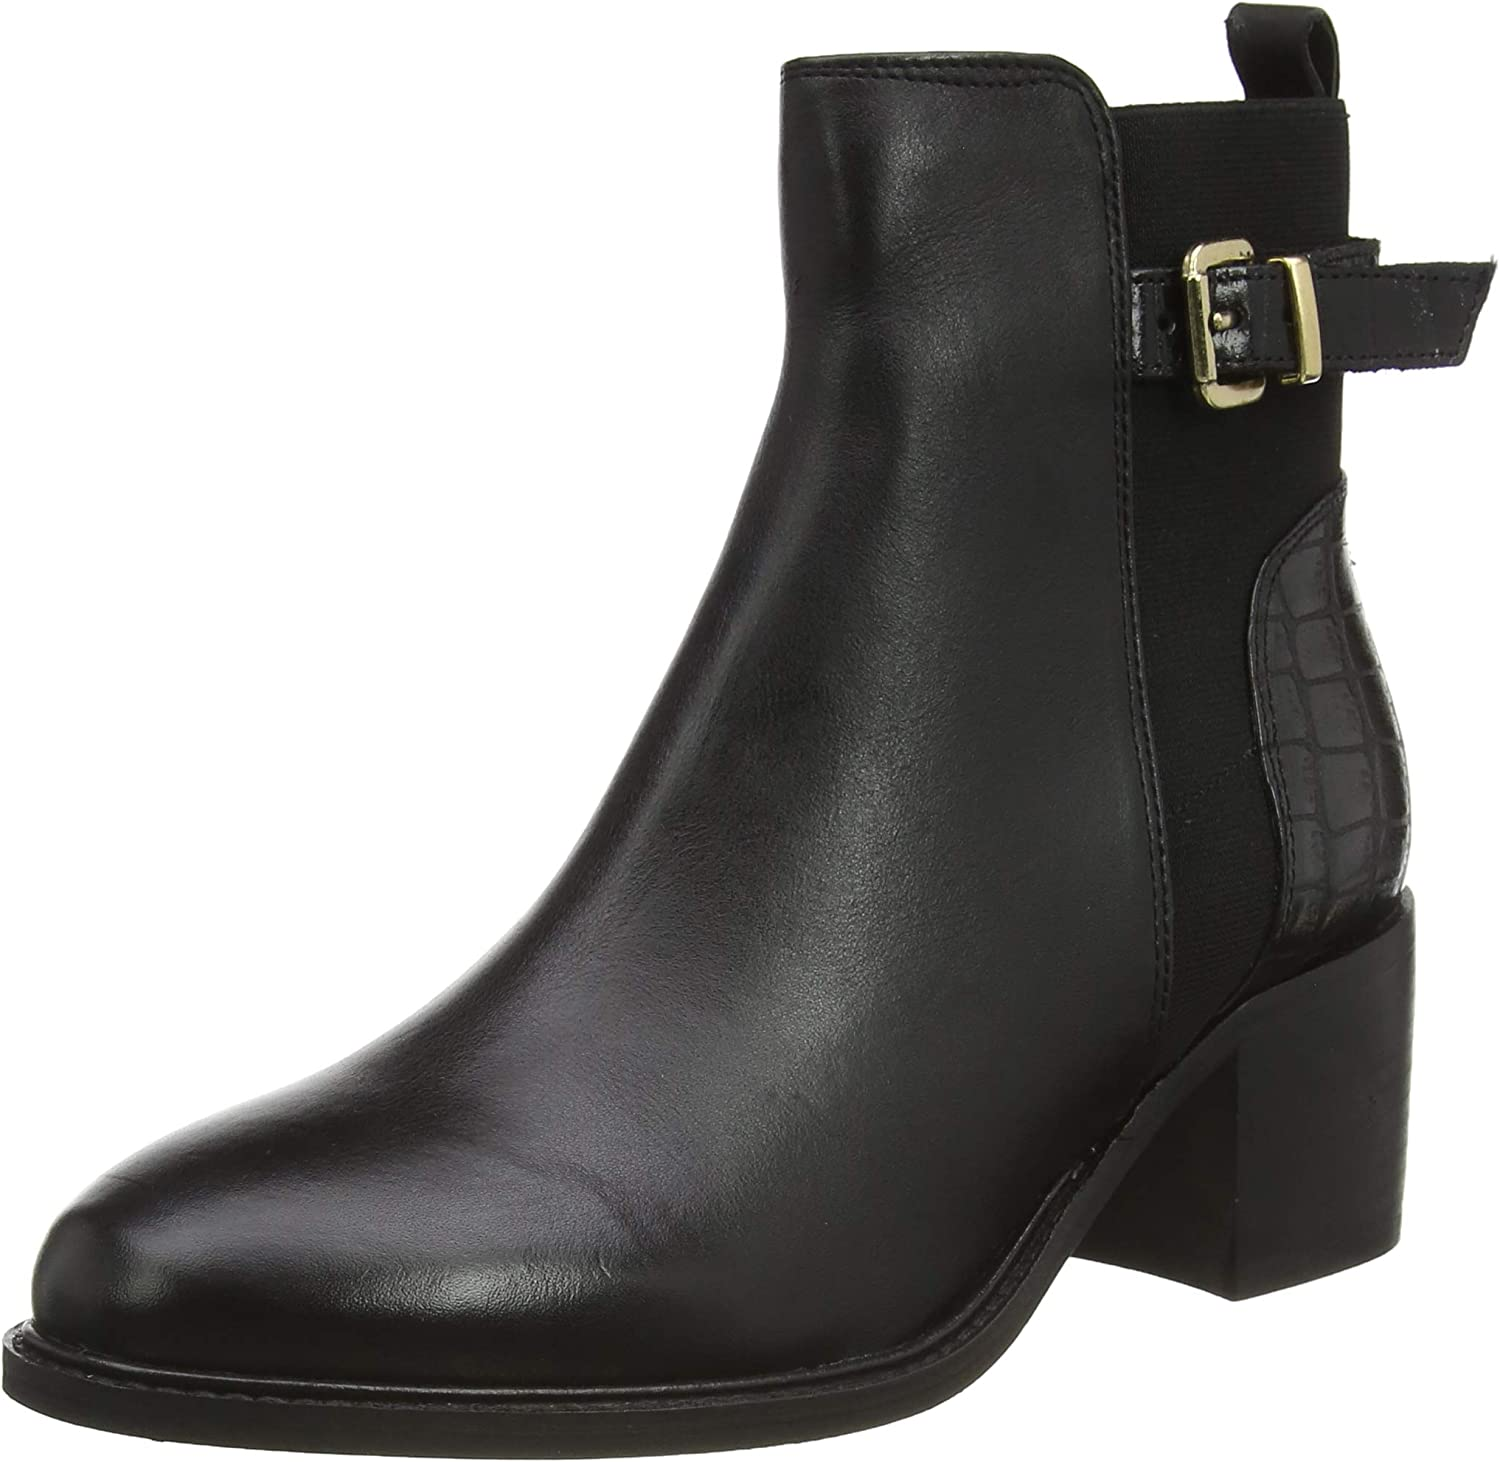 Dune London Women's Poetic Ankle Boots